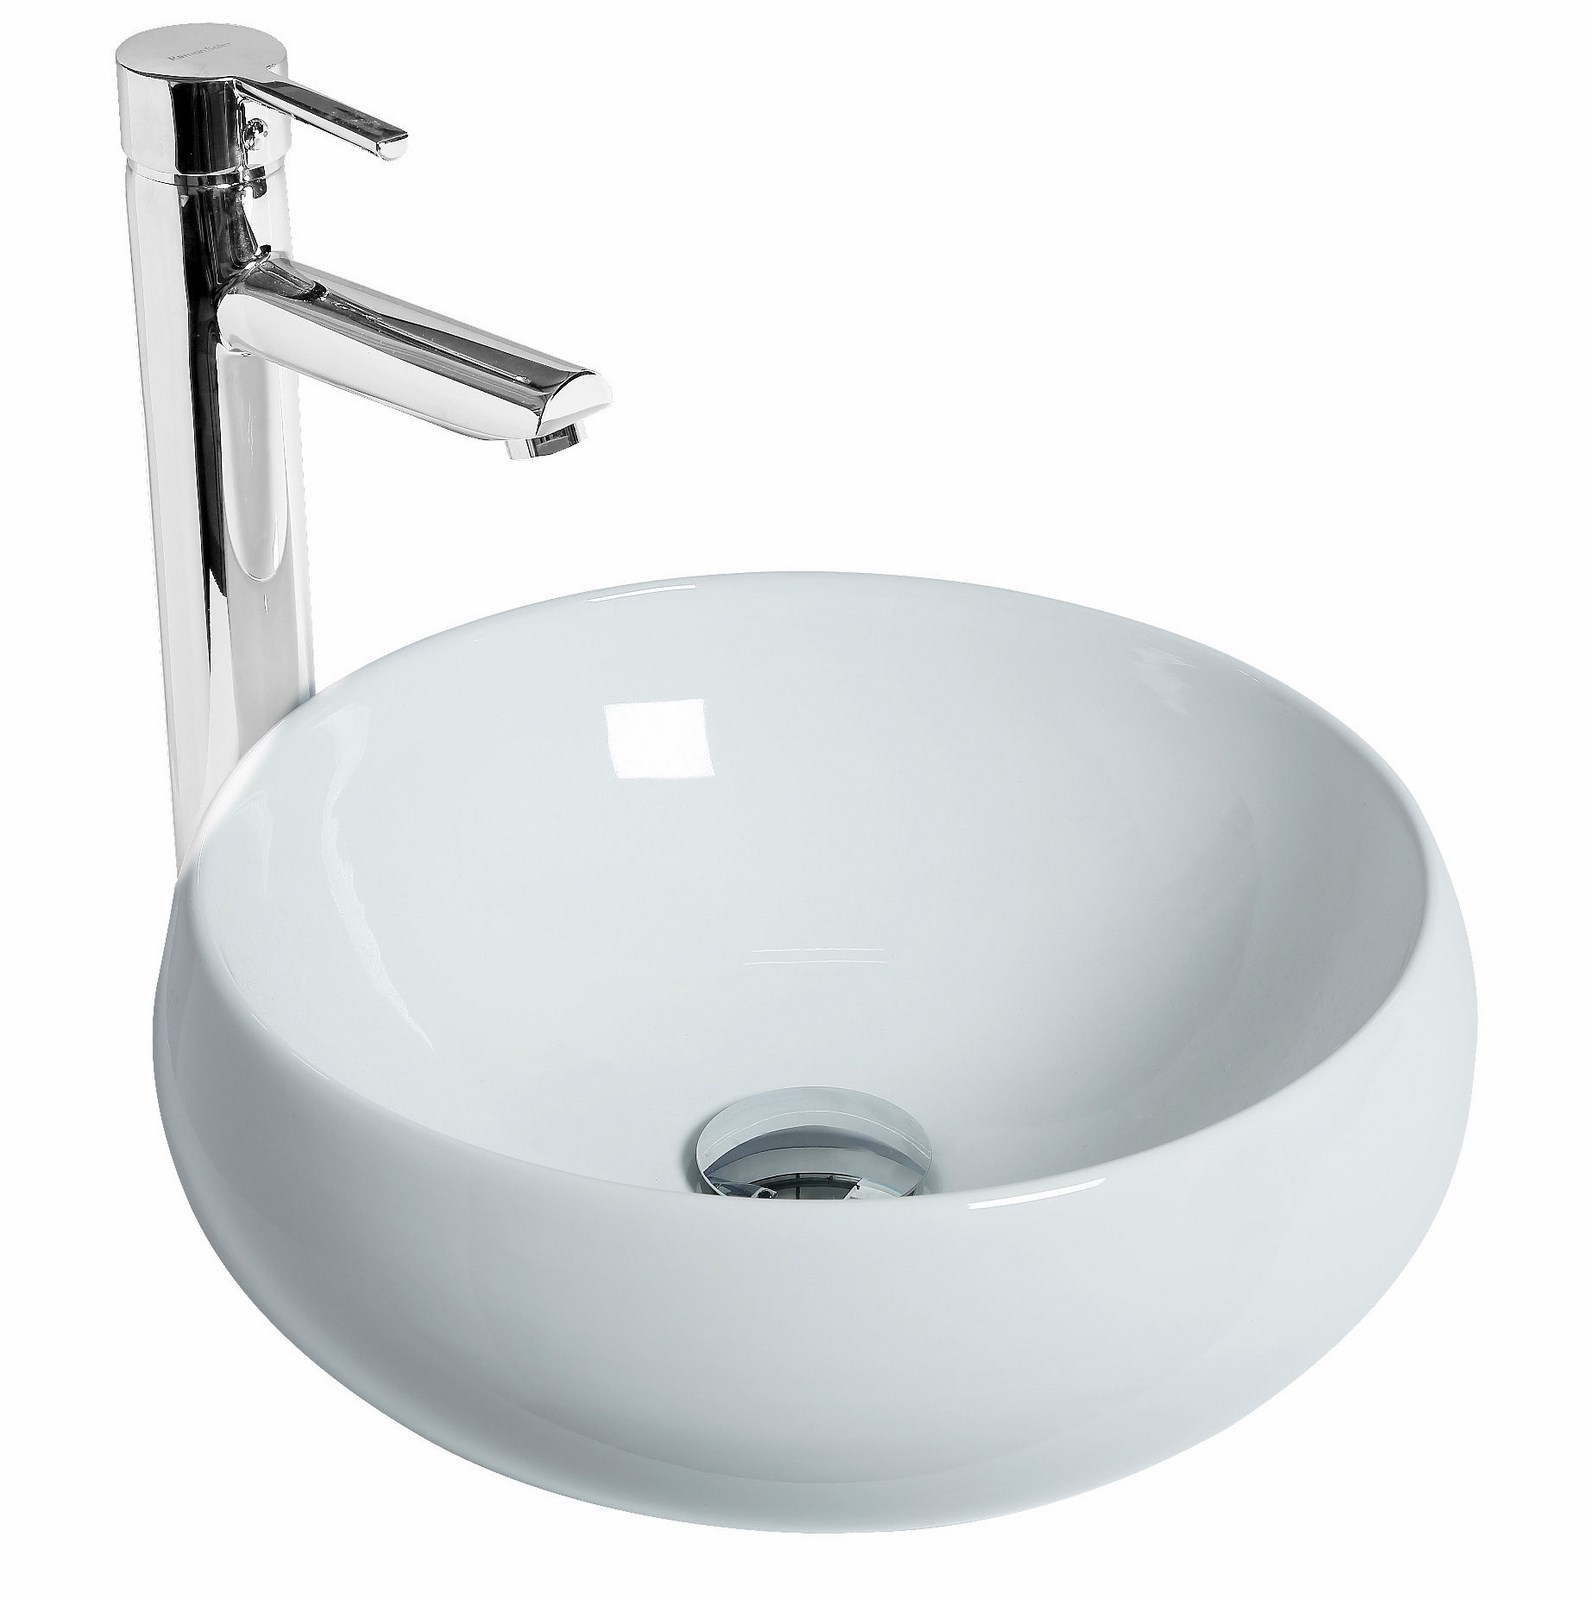 Vasque poser ronde galet discac for Vasque salle de bain a poser